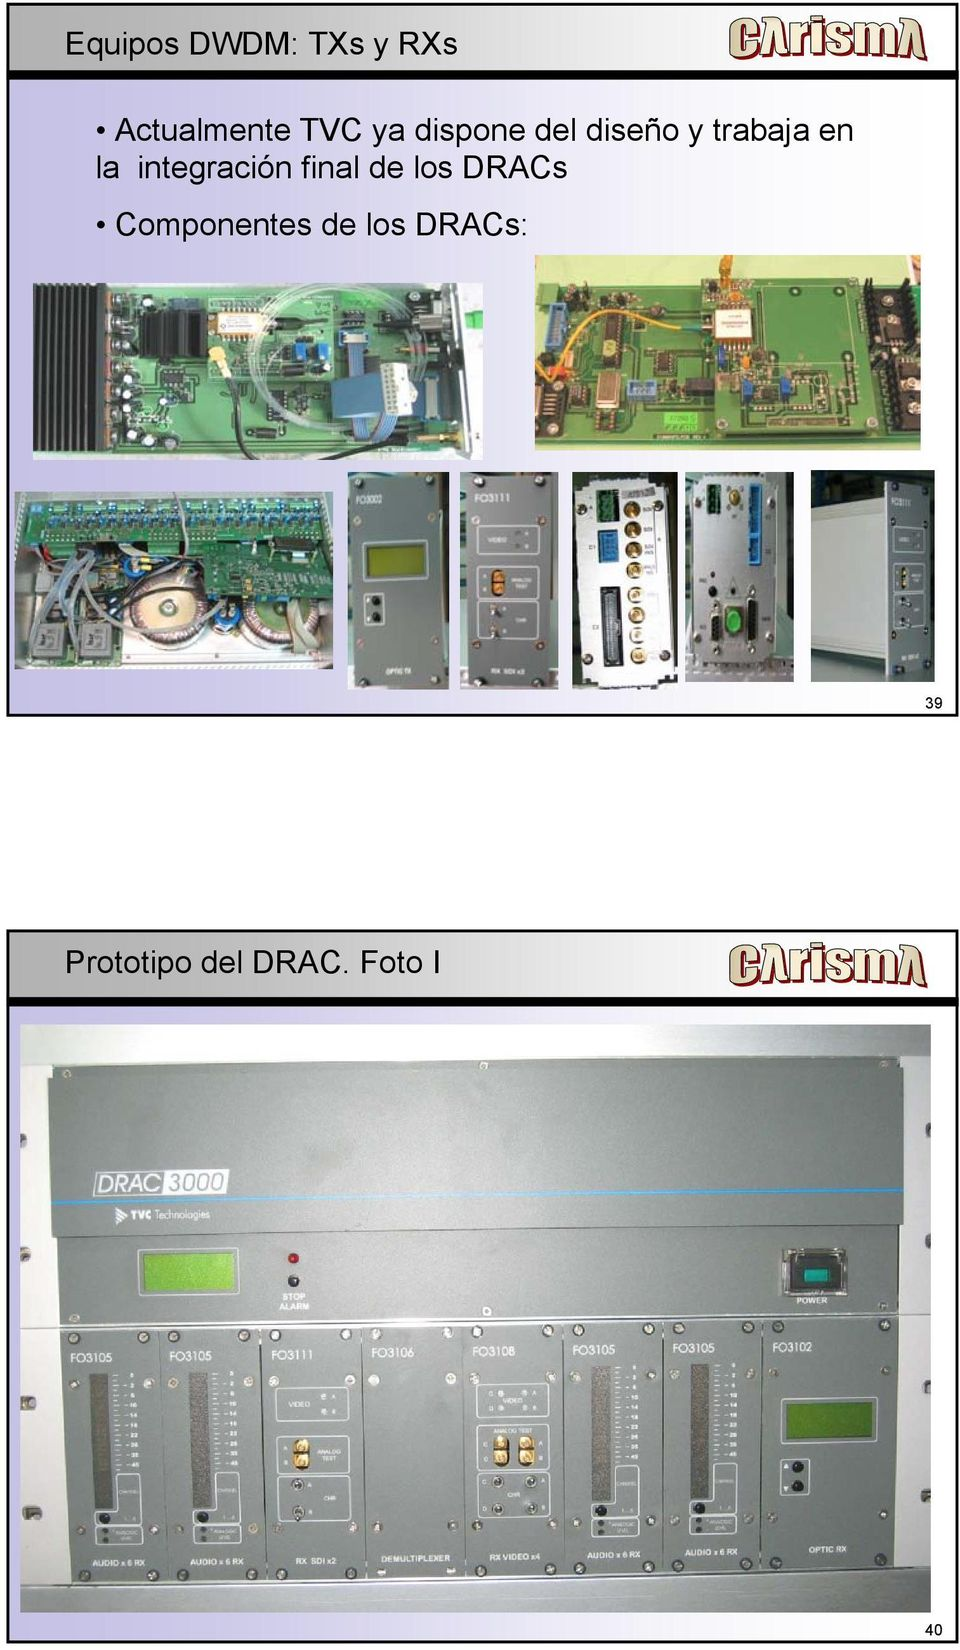 integración final de los DRACs